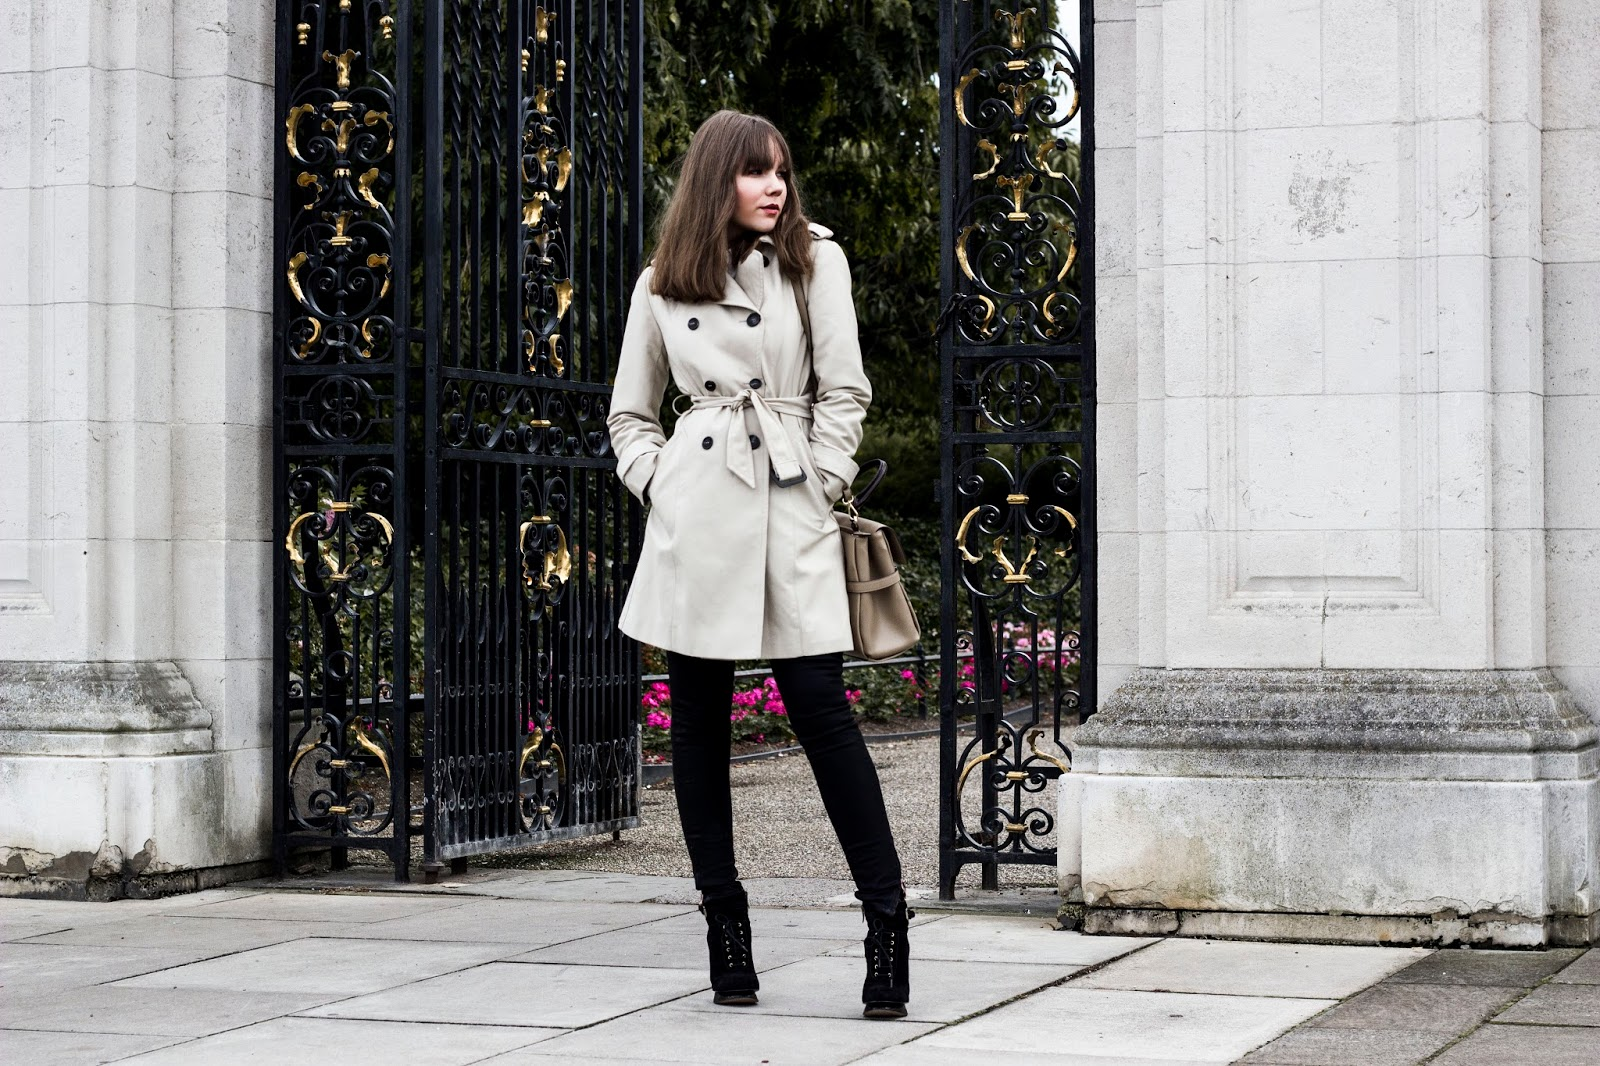 http://www.thewhimsicalwildling.com/2016/09/city-chic-conqueror.html